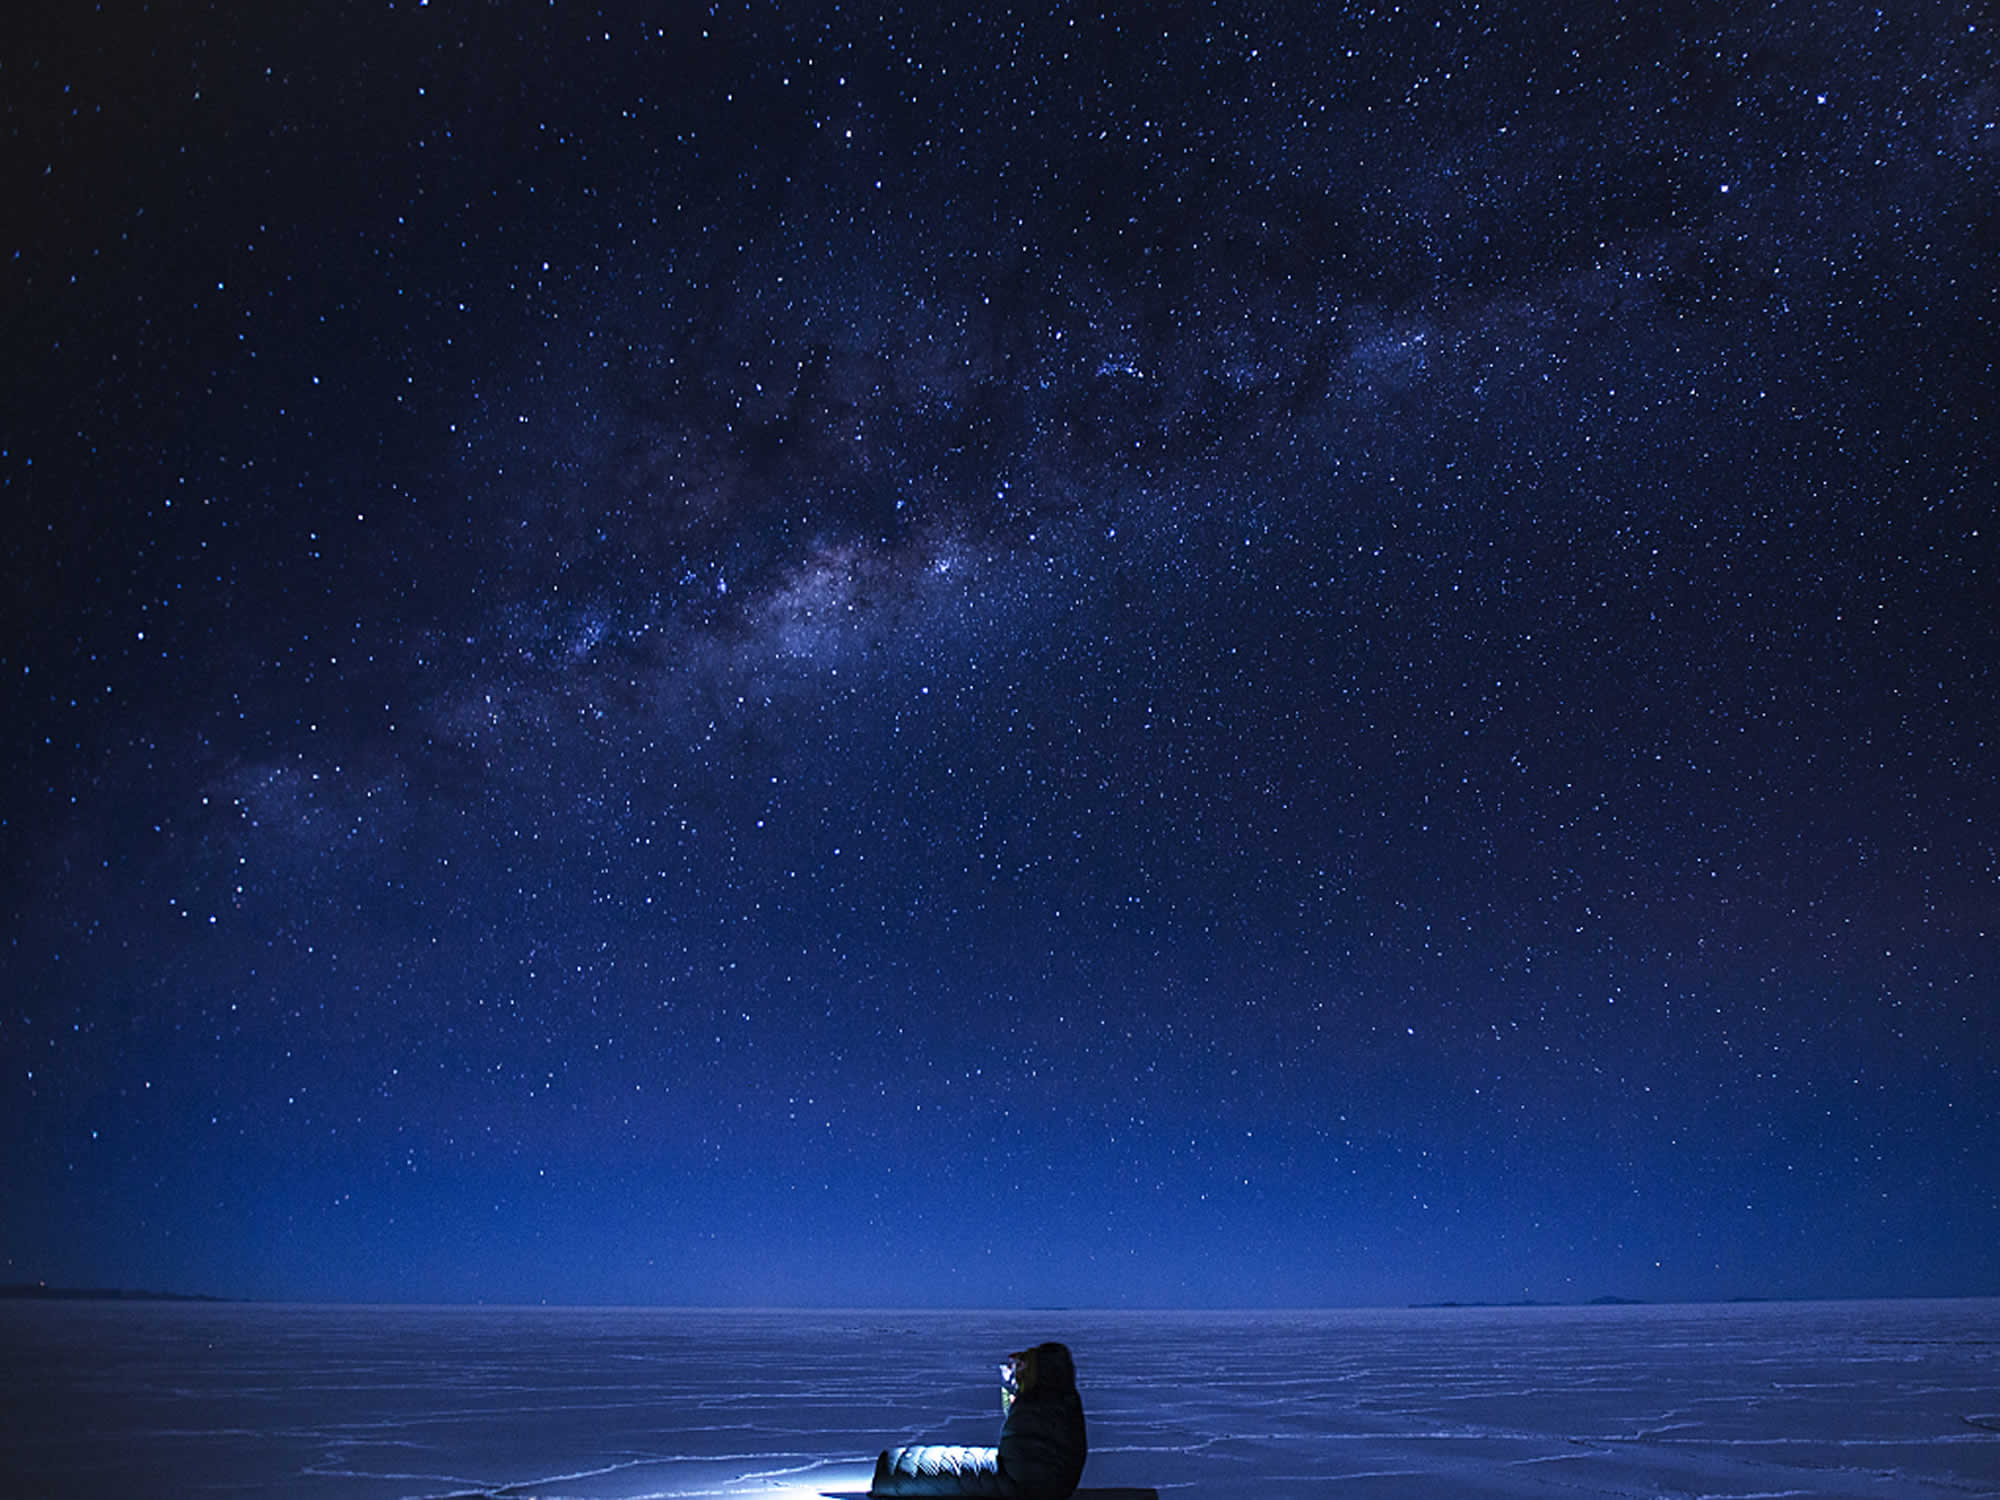 Salar de Uyuni stars at night